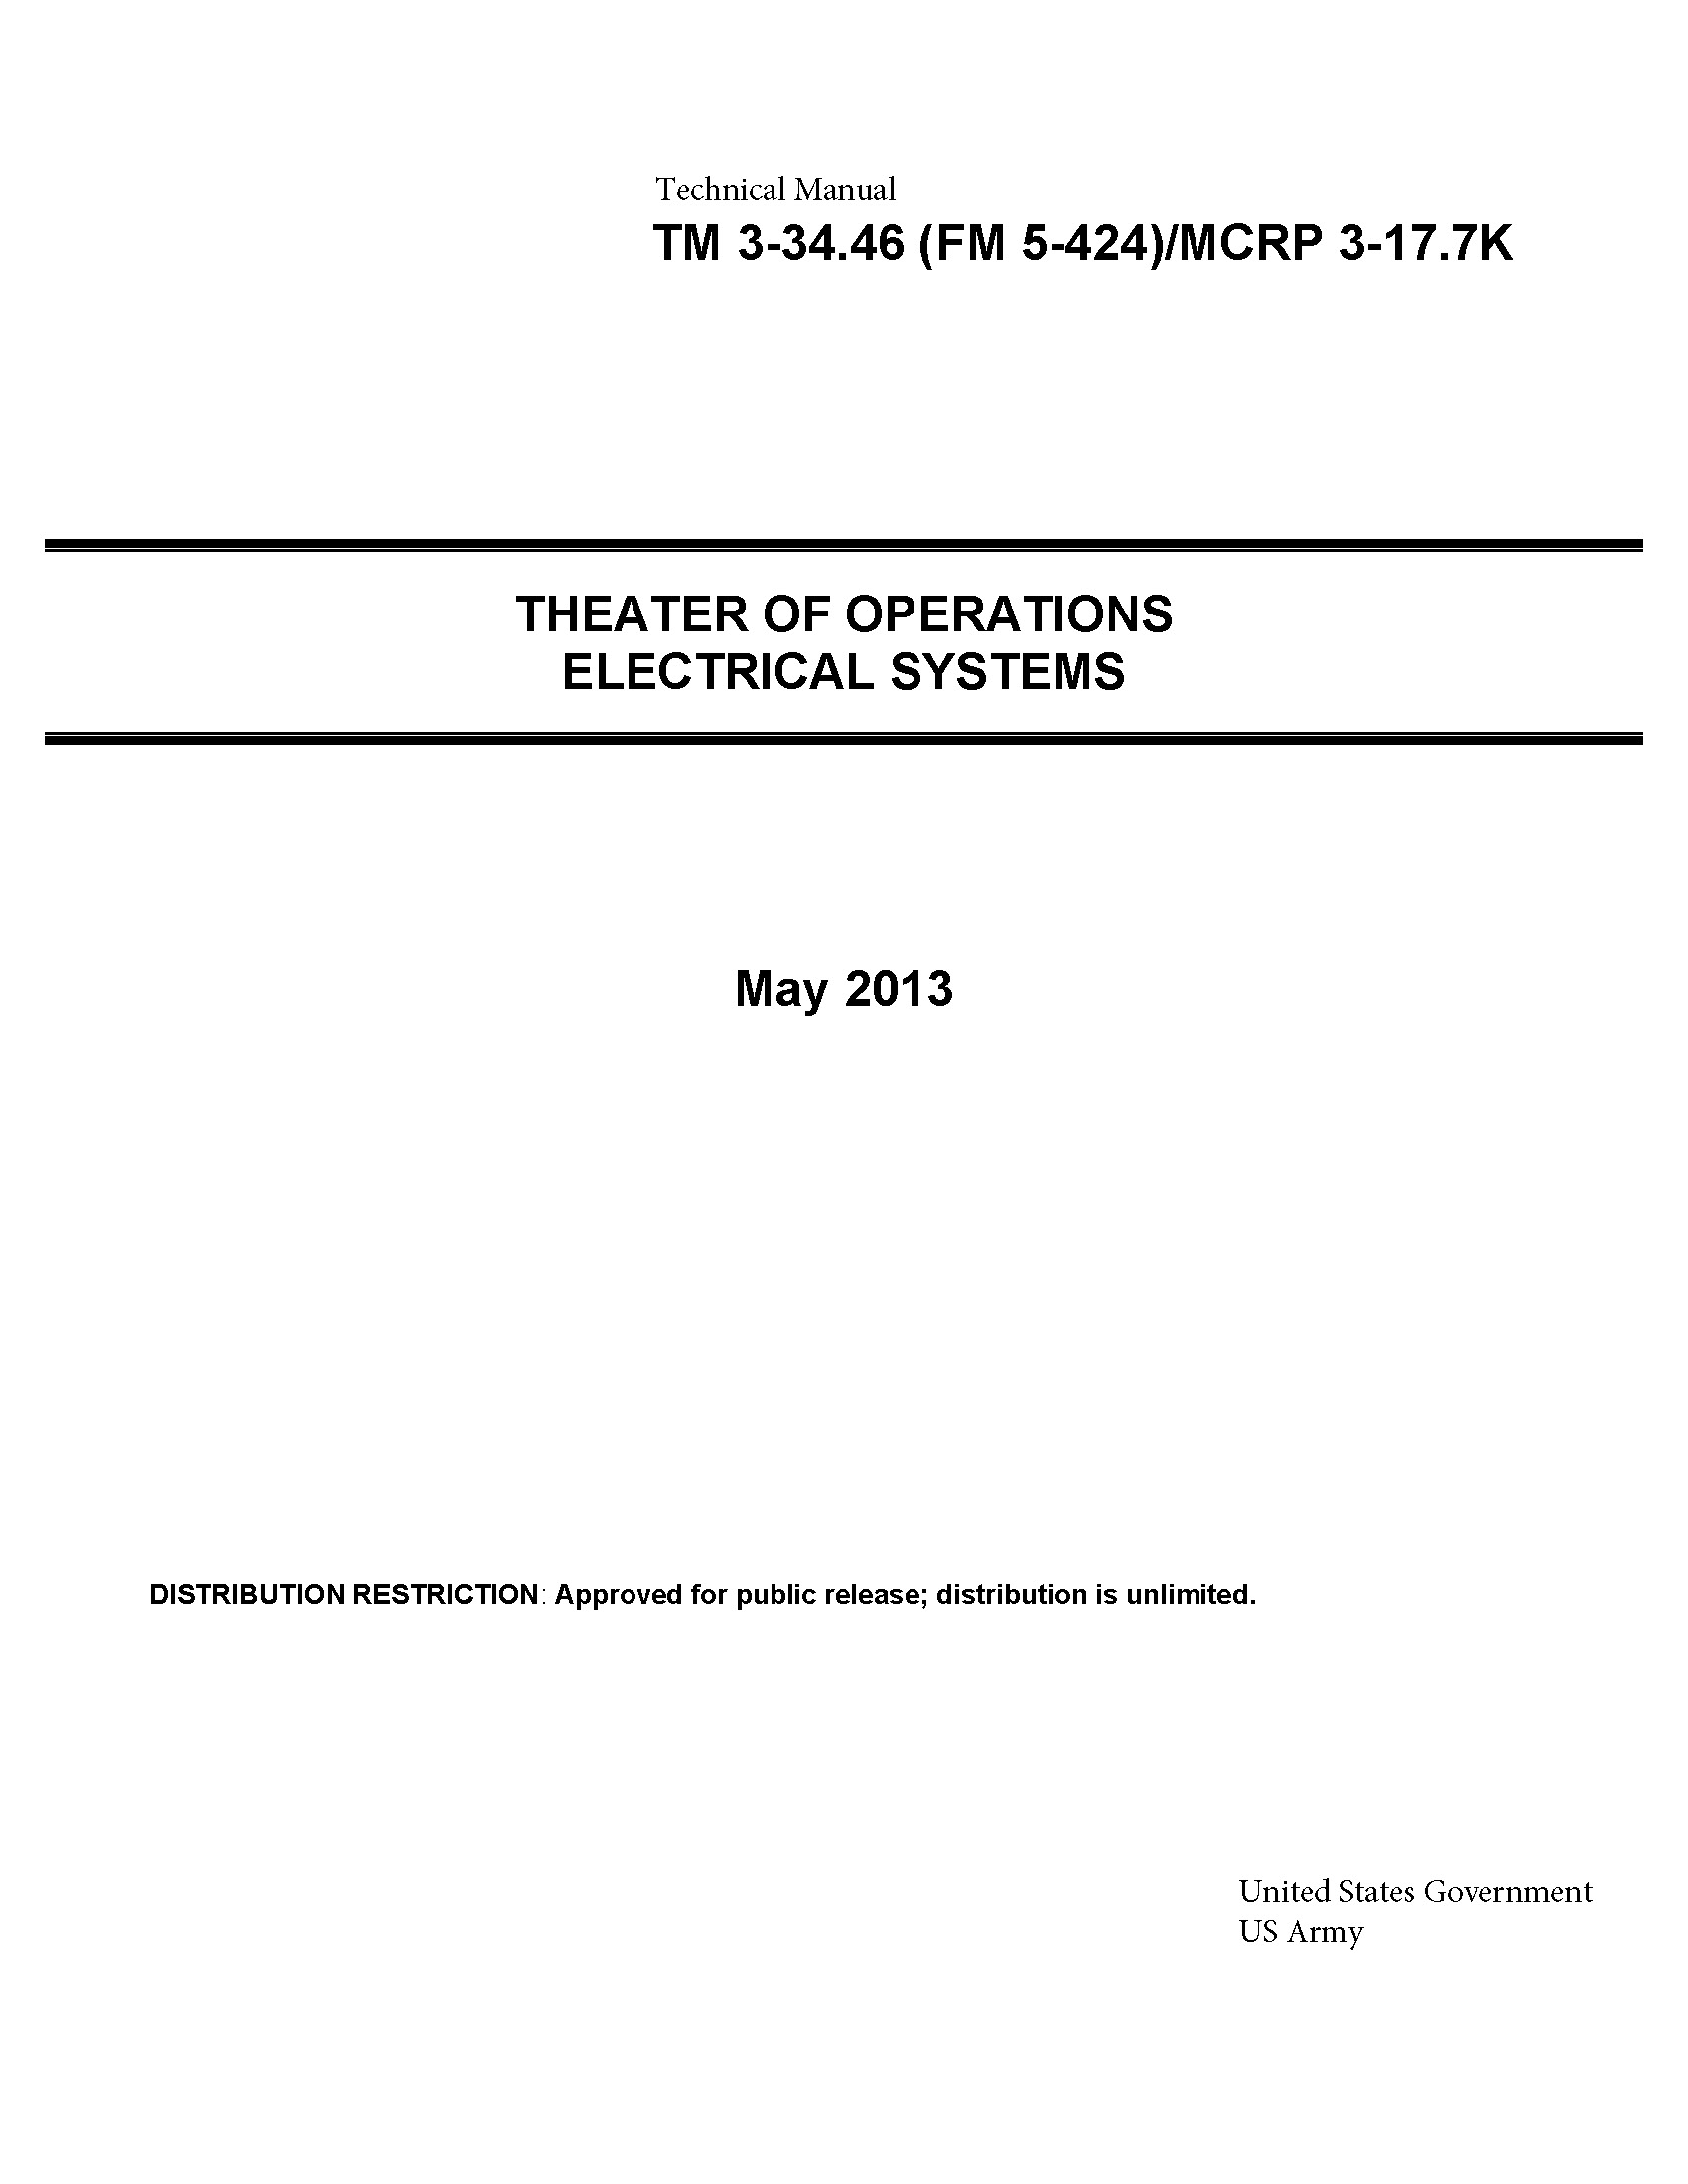 Technical Manual TM 3-34.46 (FM 5-424)/MCRP 3-17.7K Theater of Operations Electrical Systems May 2013